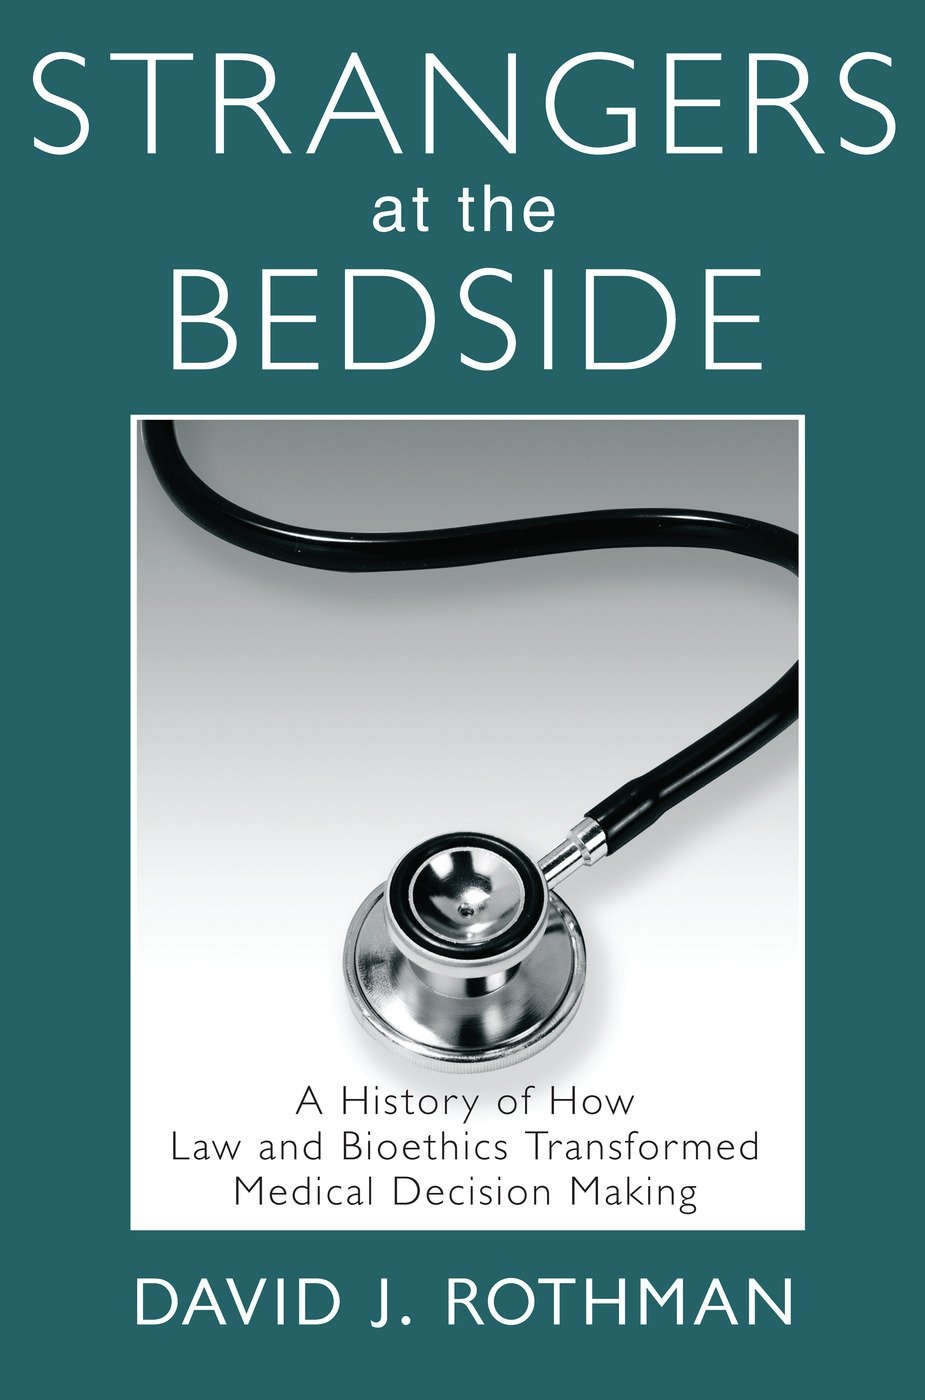 Strangers at the Bedside: A History of How Law and Bioethics Transformed Medical Decision Making book cover